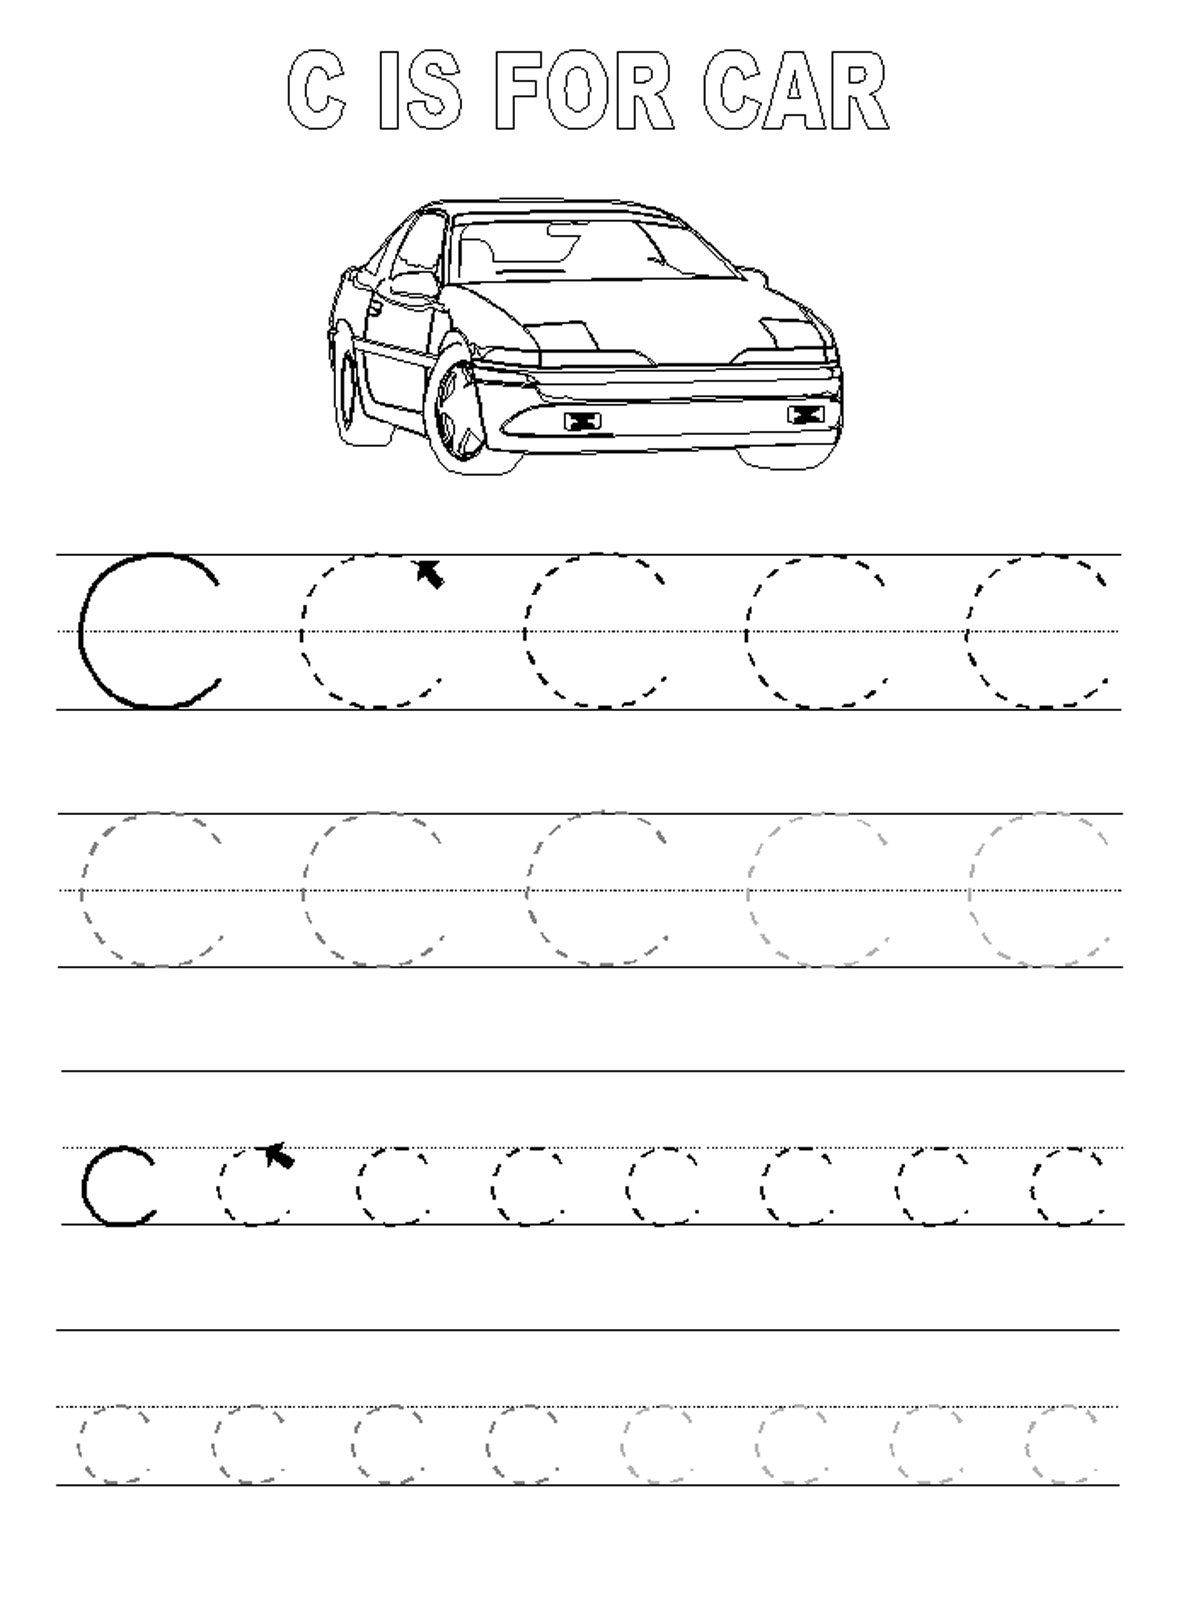 worksheet Traceable Letters trace the letters car learning to write pinterest cars traceable alphabet for your kindergarten students start of what will makes kids enjoy w